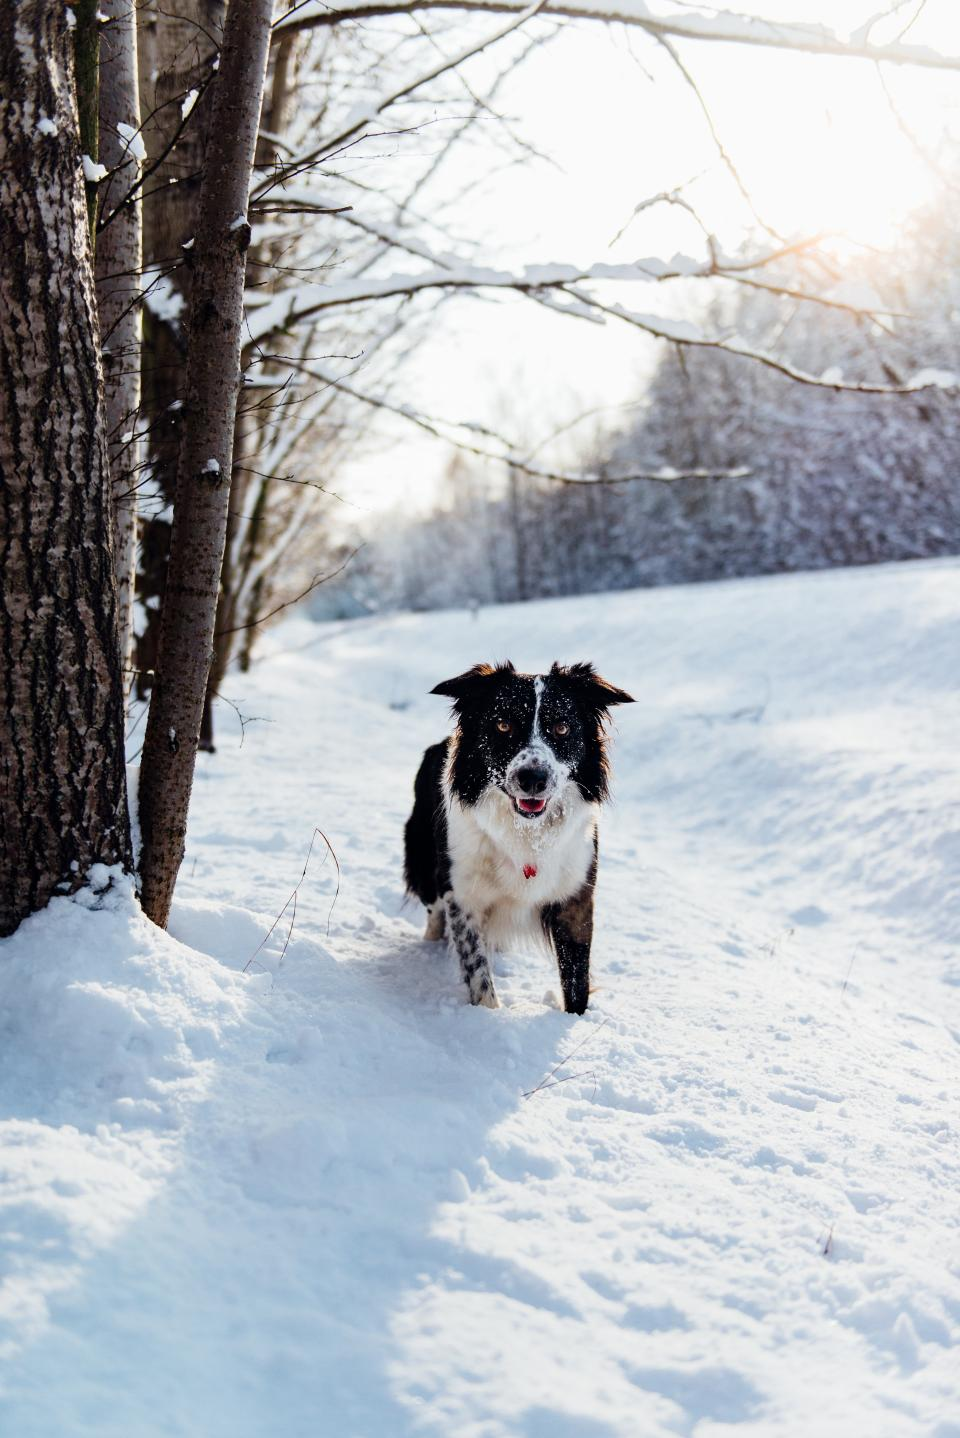 dog animal pet puppy snow winter trees plants nature outdoor sunny day